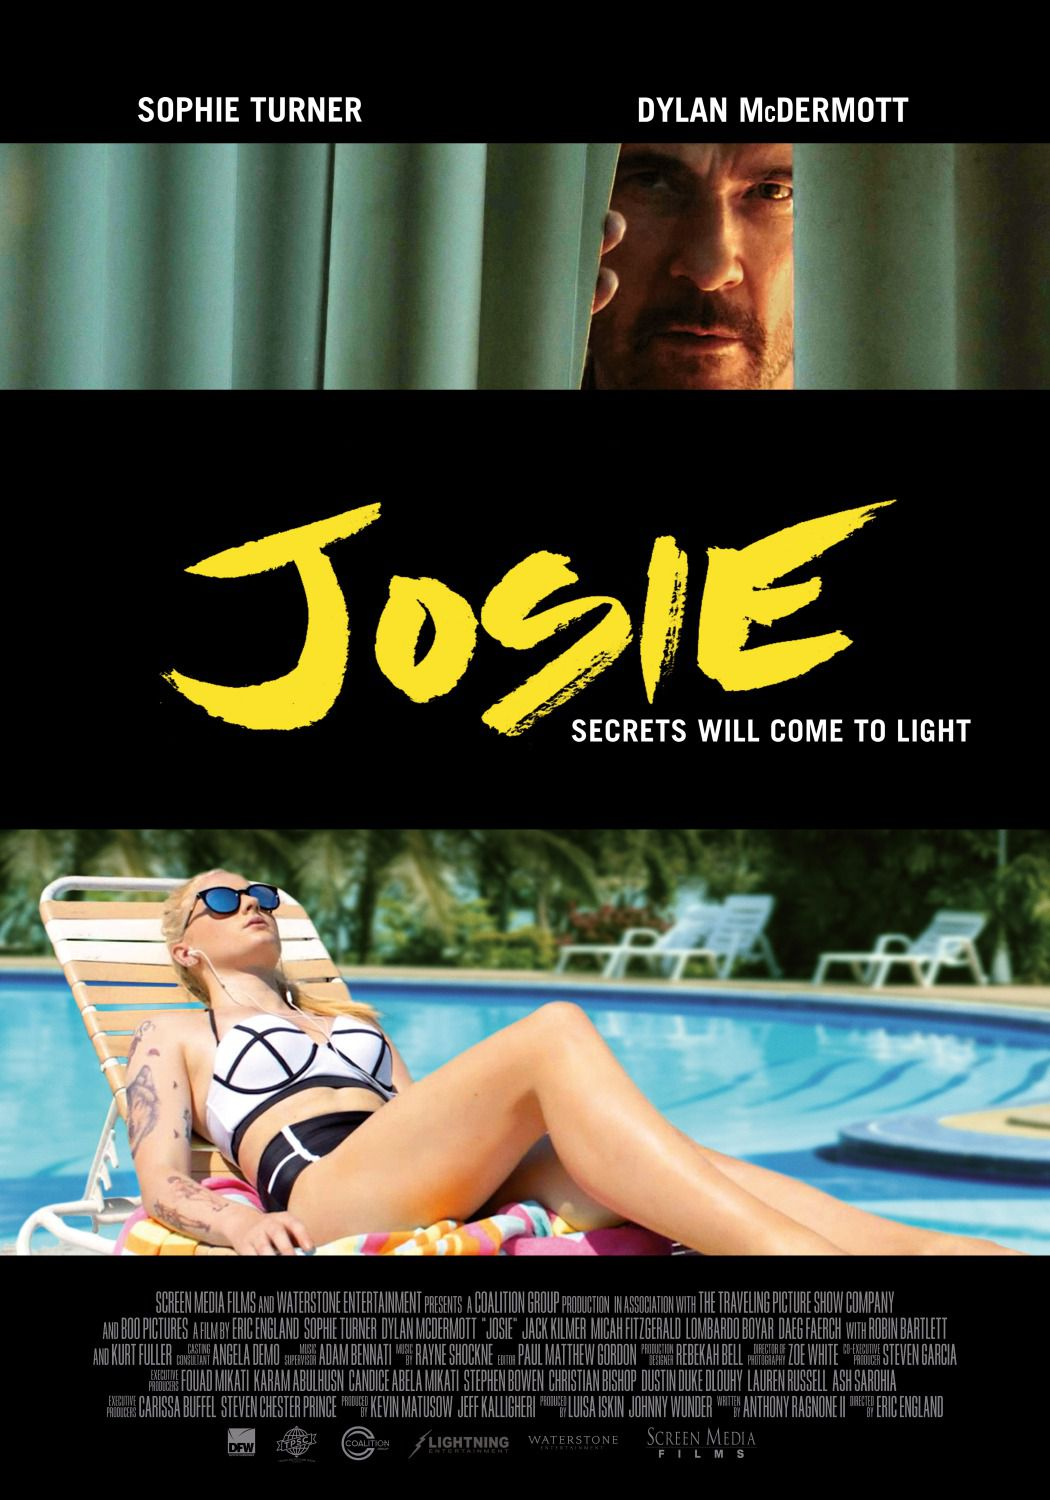 Josie - Huntsville - Secrets will come to light - Sophie Turner, Dylan McDermott, Jack Kilmer, Daeg Faerch - poster 2018